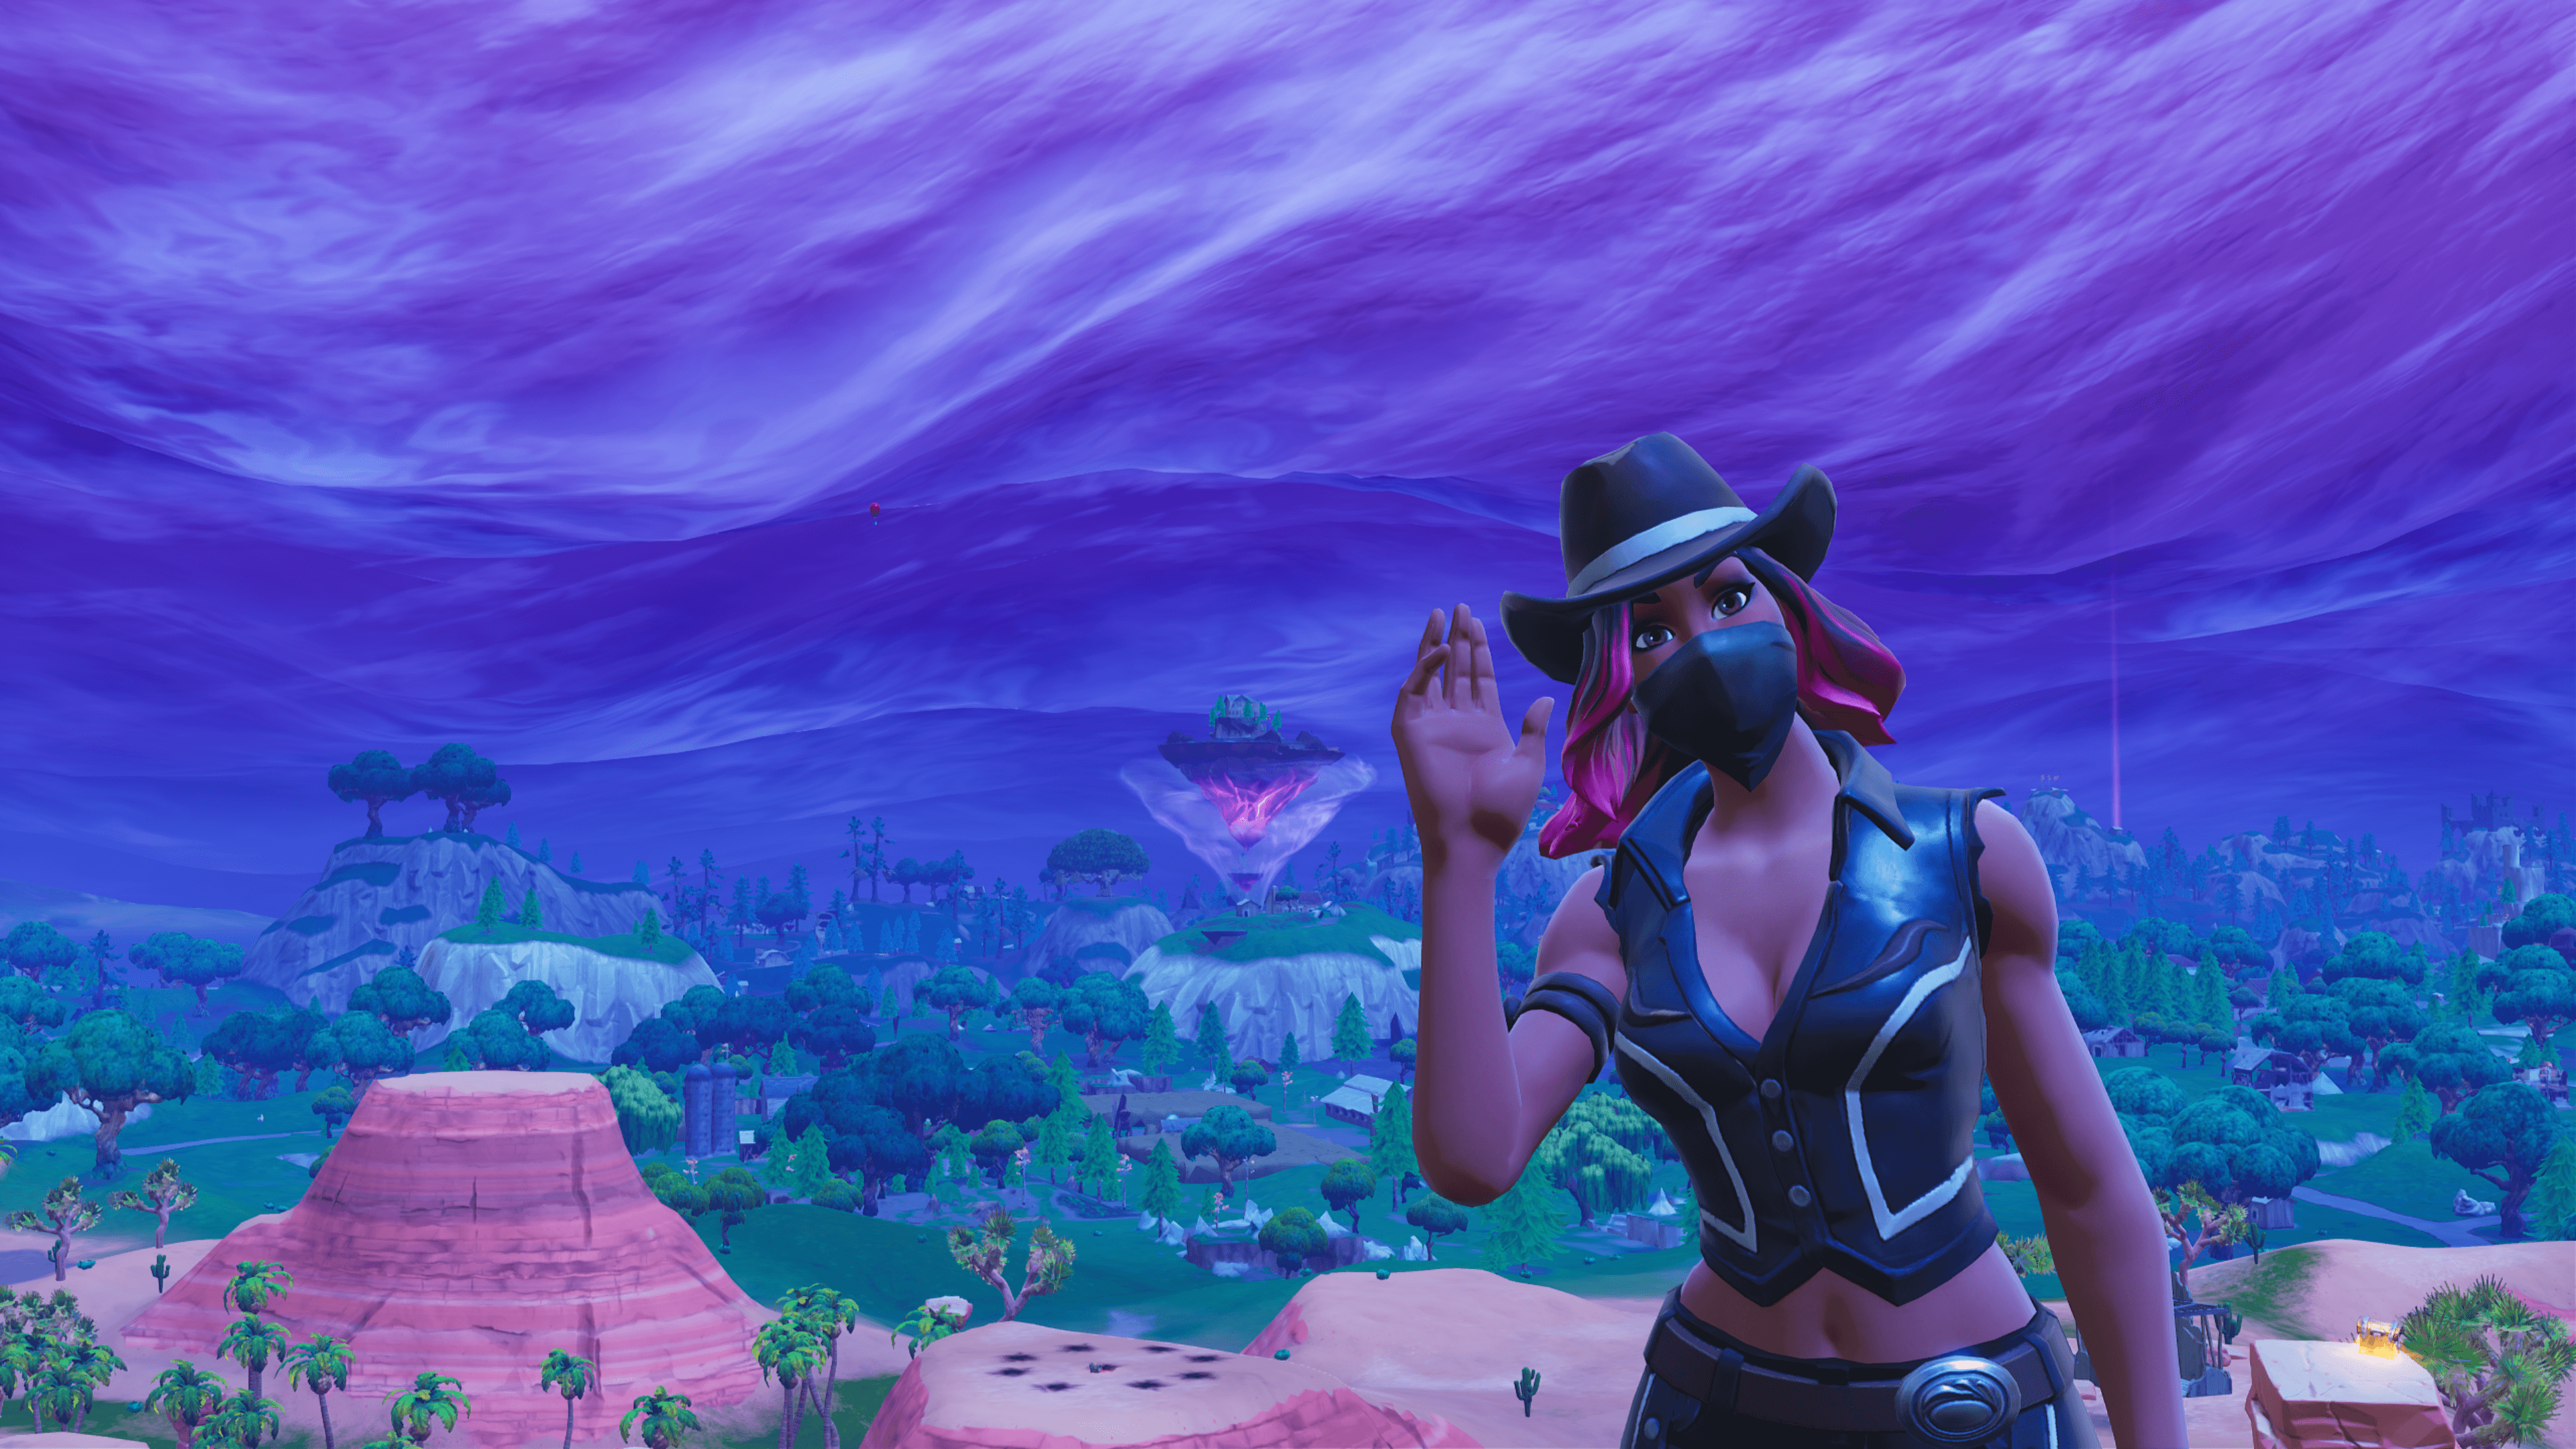 Calamity | Fortnite 4k Ultra HD Wallpaper | Background Image ...